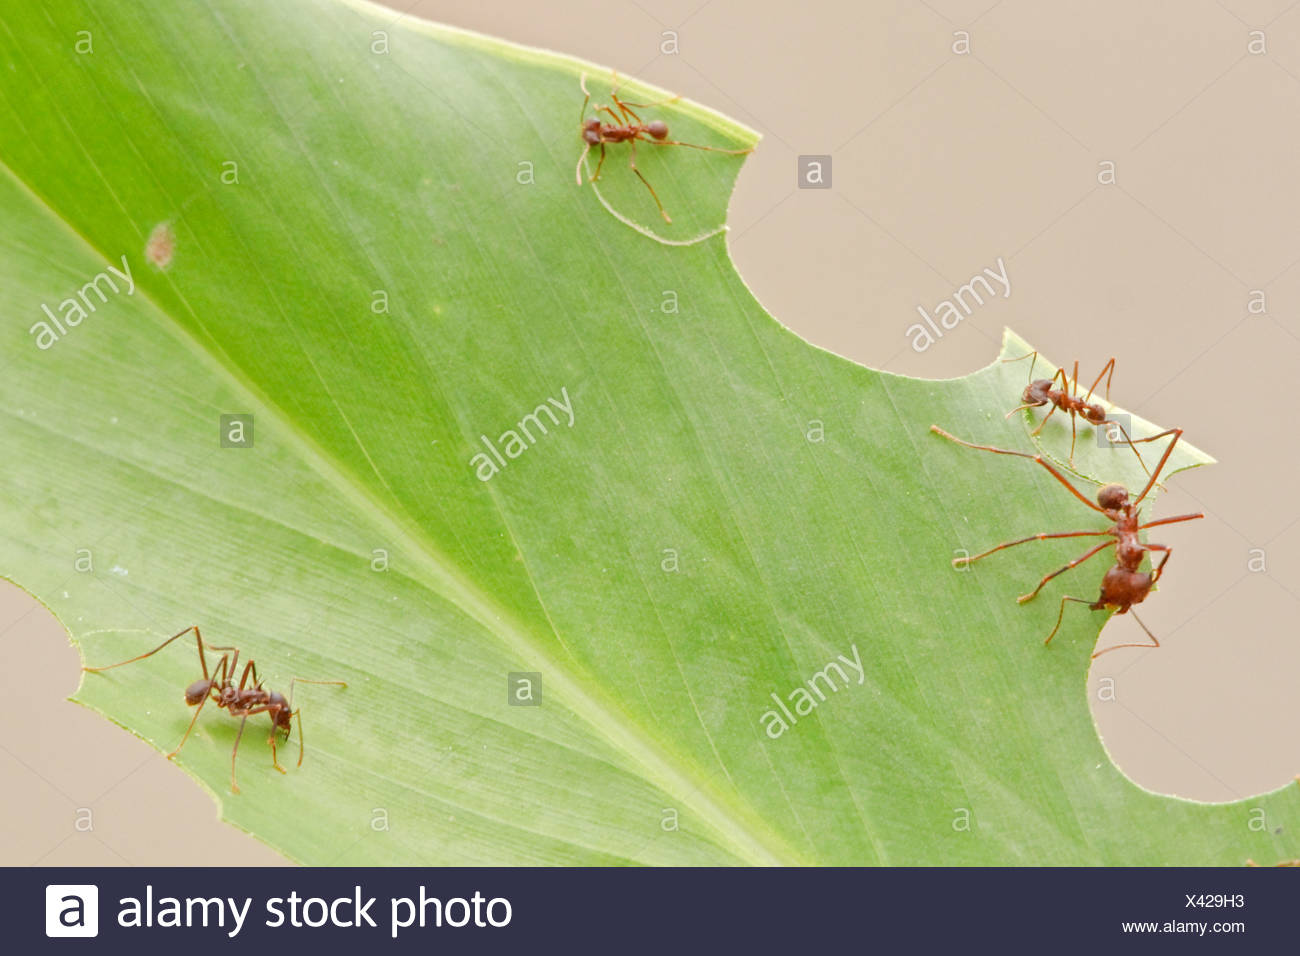 Ants Working Stock Photos Ants Working Stock Images Alamy